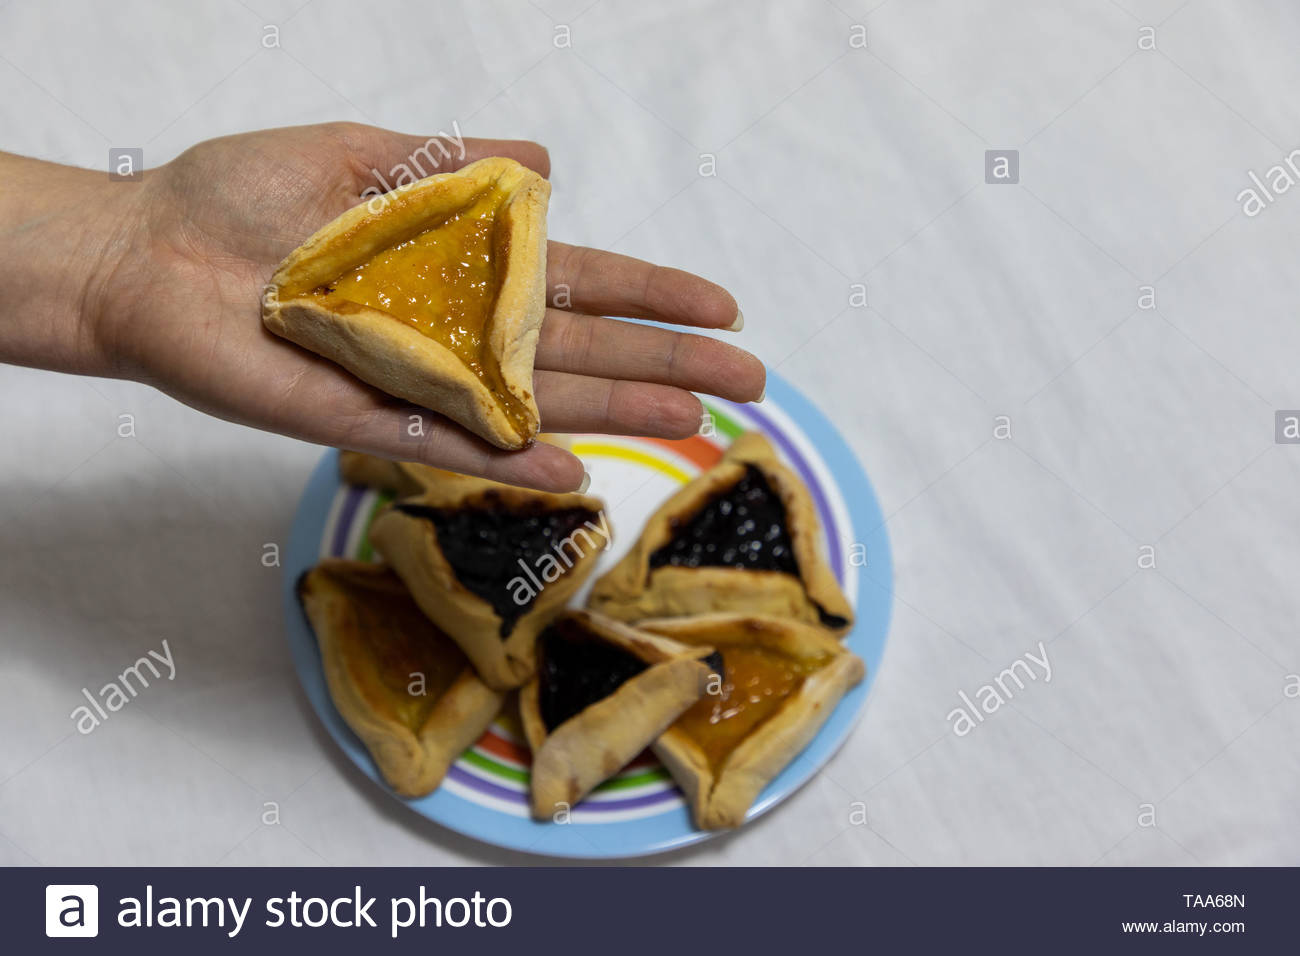 Woman hand holding hamantash cookie on top of colorful plate with more hamantash cookies Stock Photo